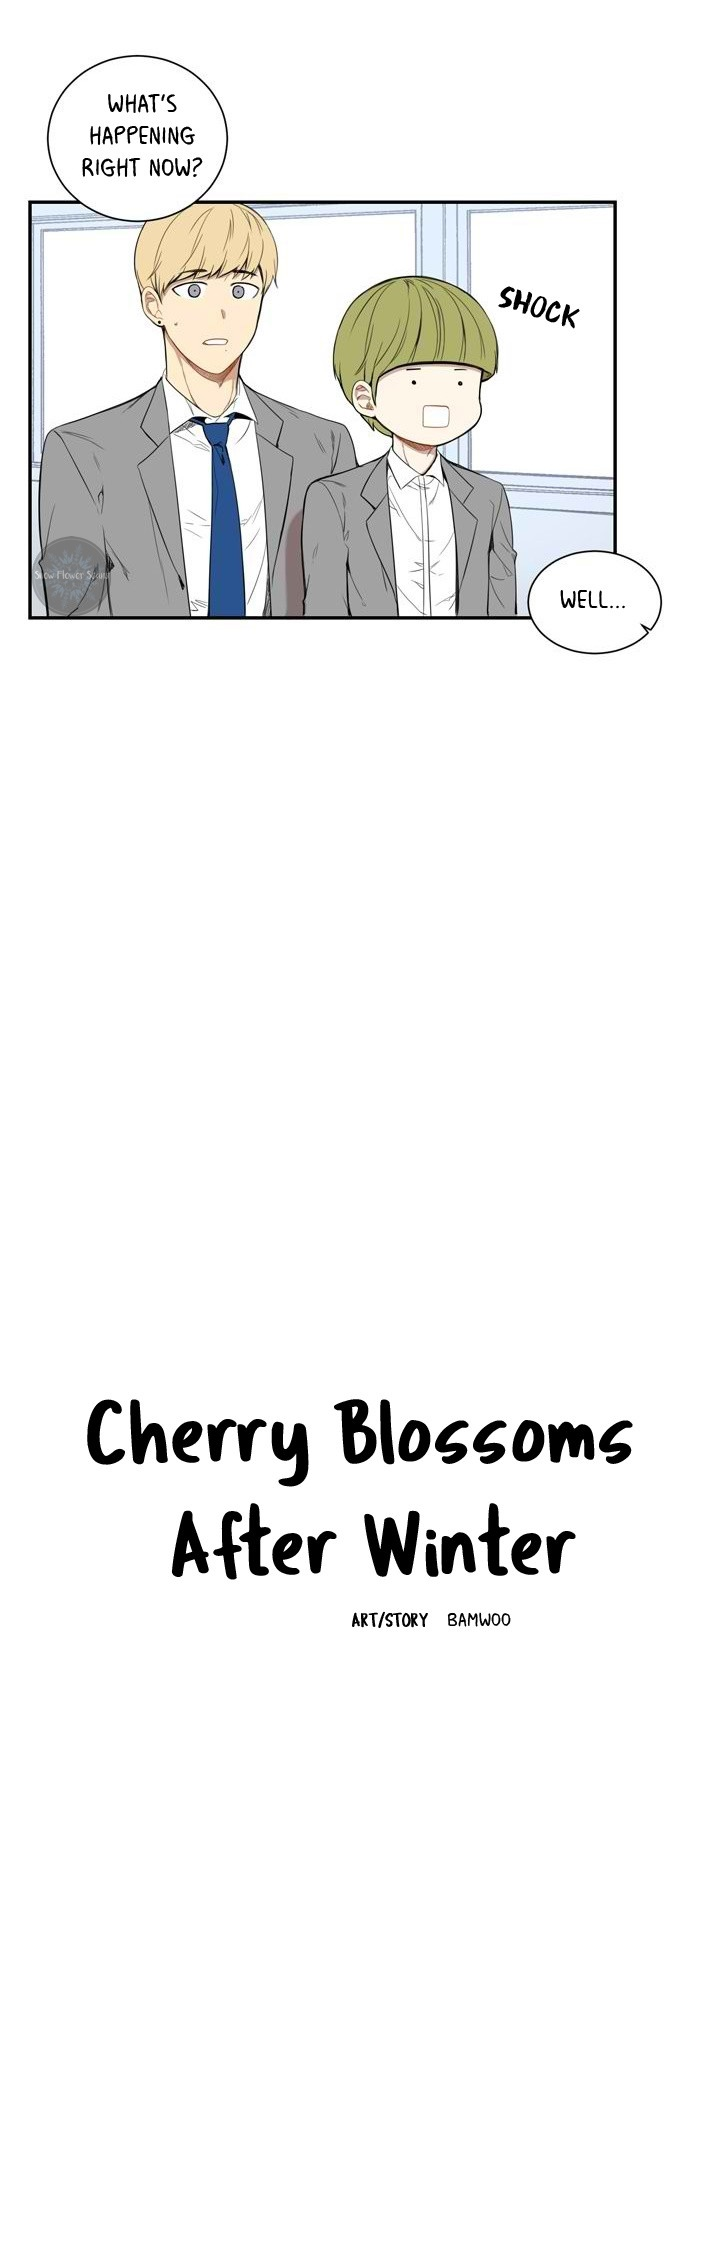 Cherry Blossoms After Winter - Chapter 9